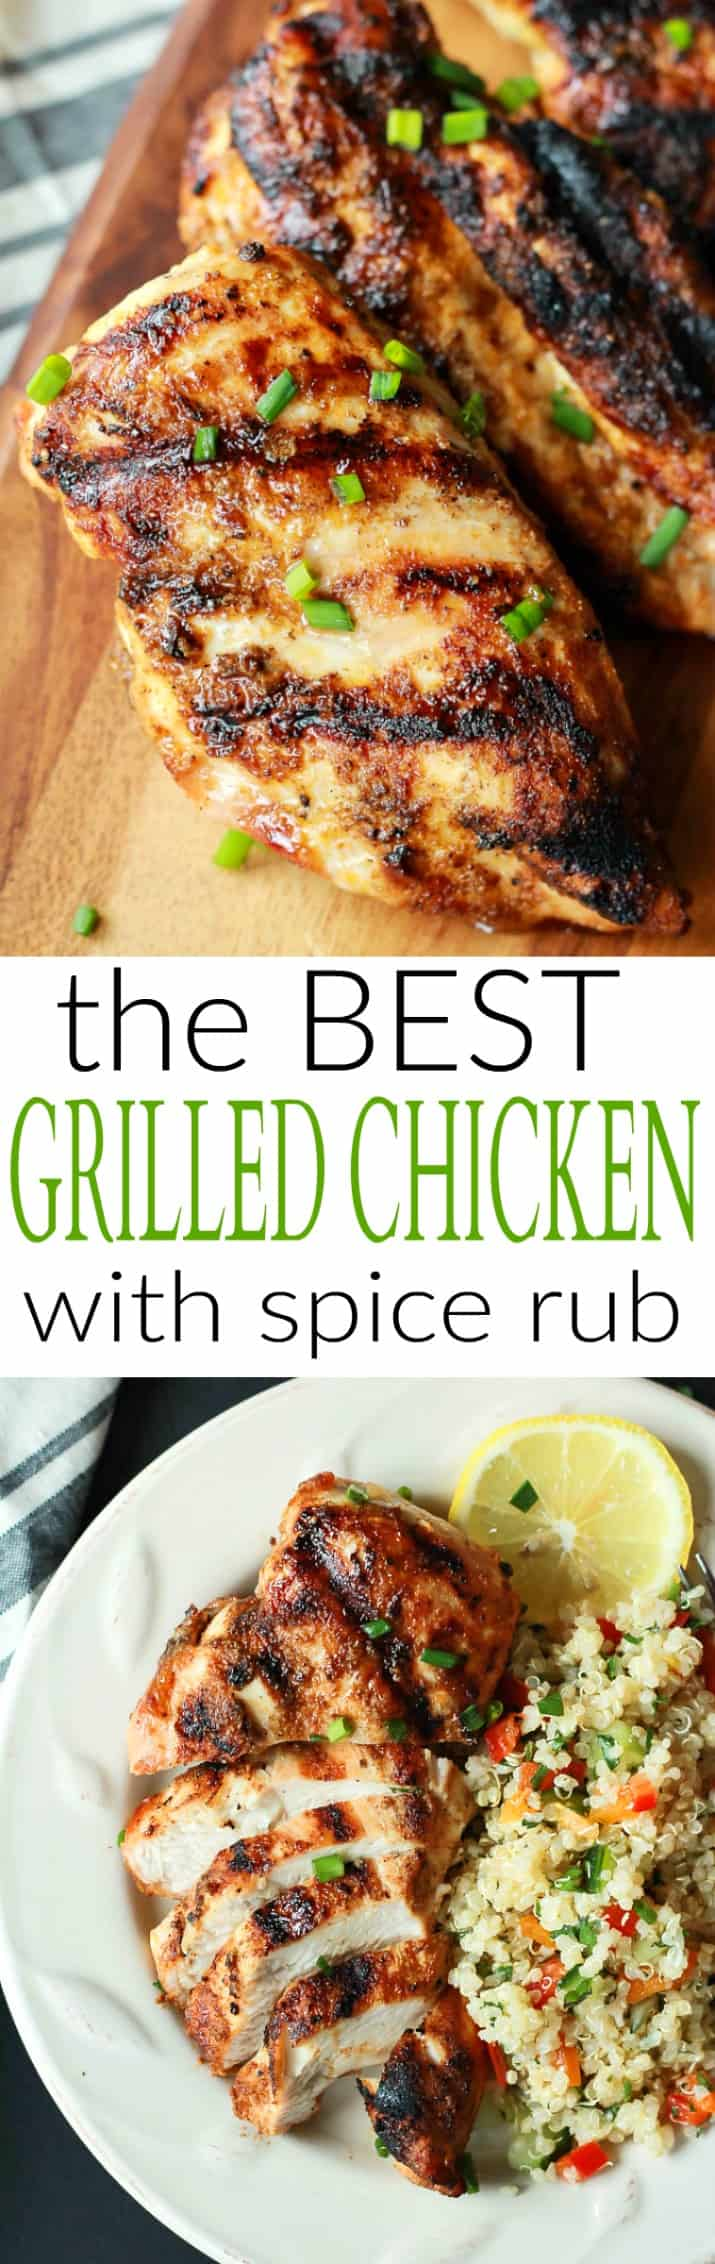 Juicy Grilled Chicken Breast with Homemade Spice Rub ...